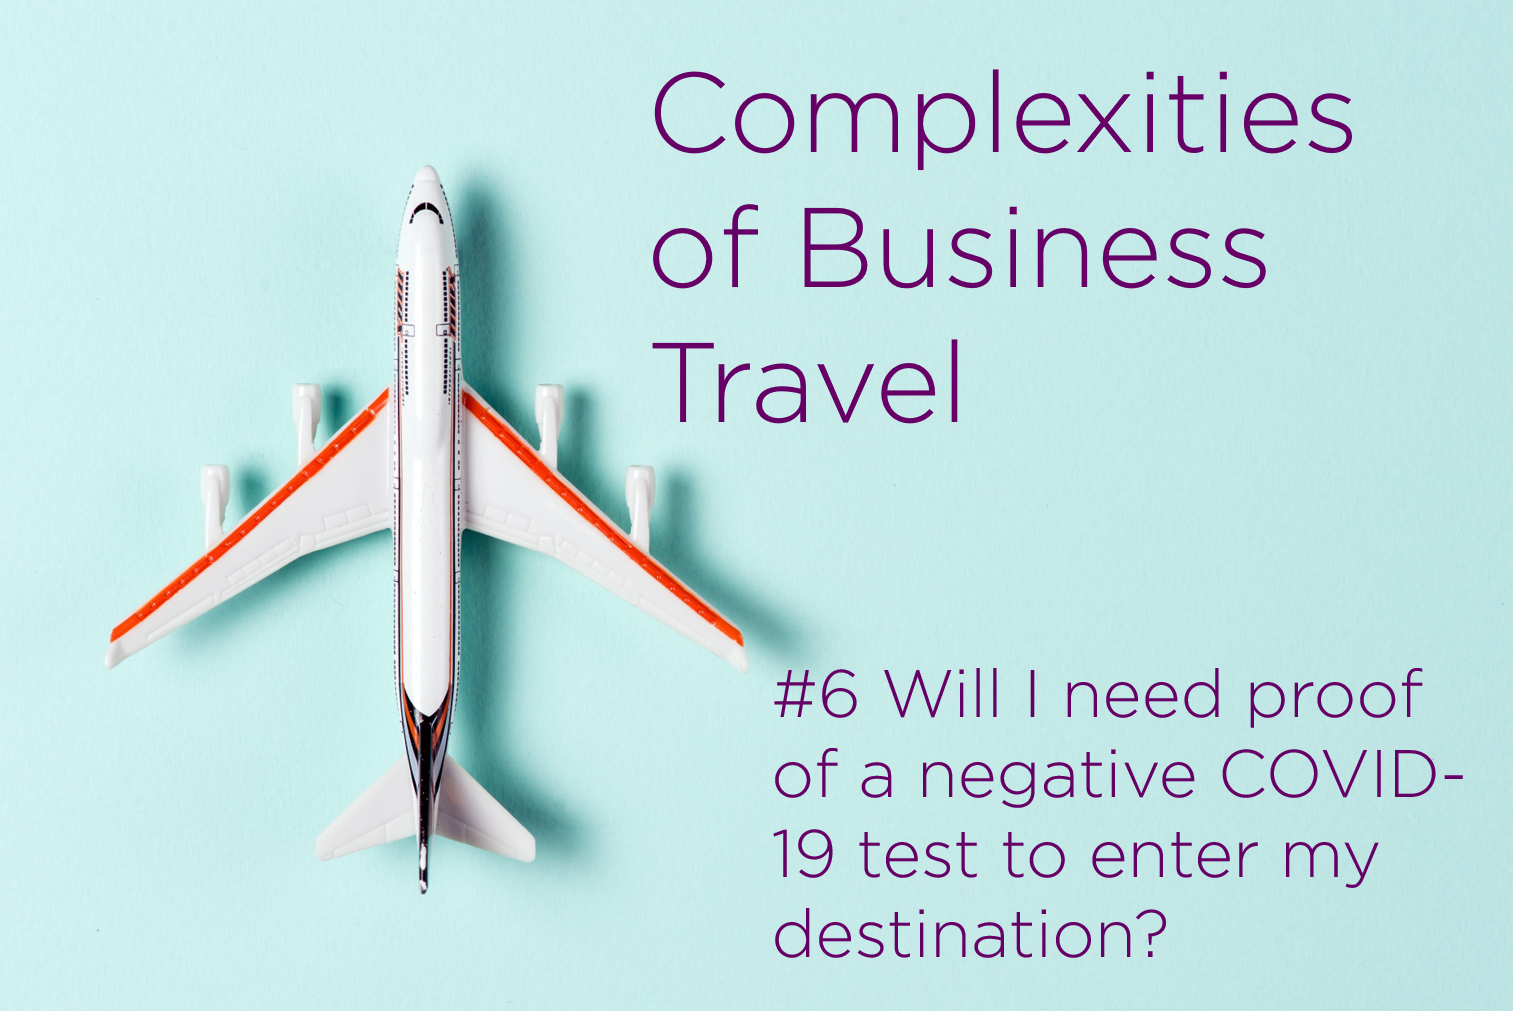 Complexities of Business Travel: #6 Will I need proof of a negative COVID-19 test to enter my destination?